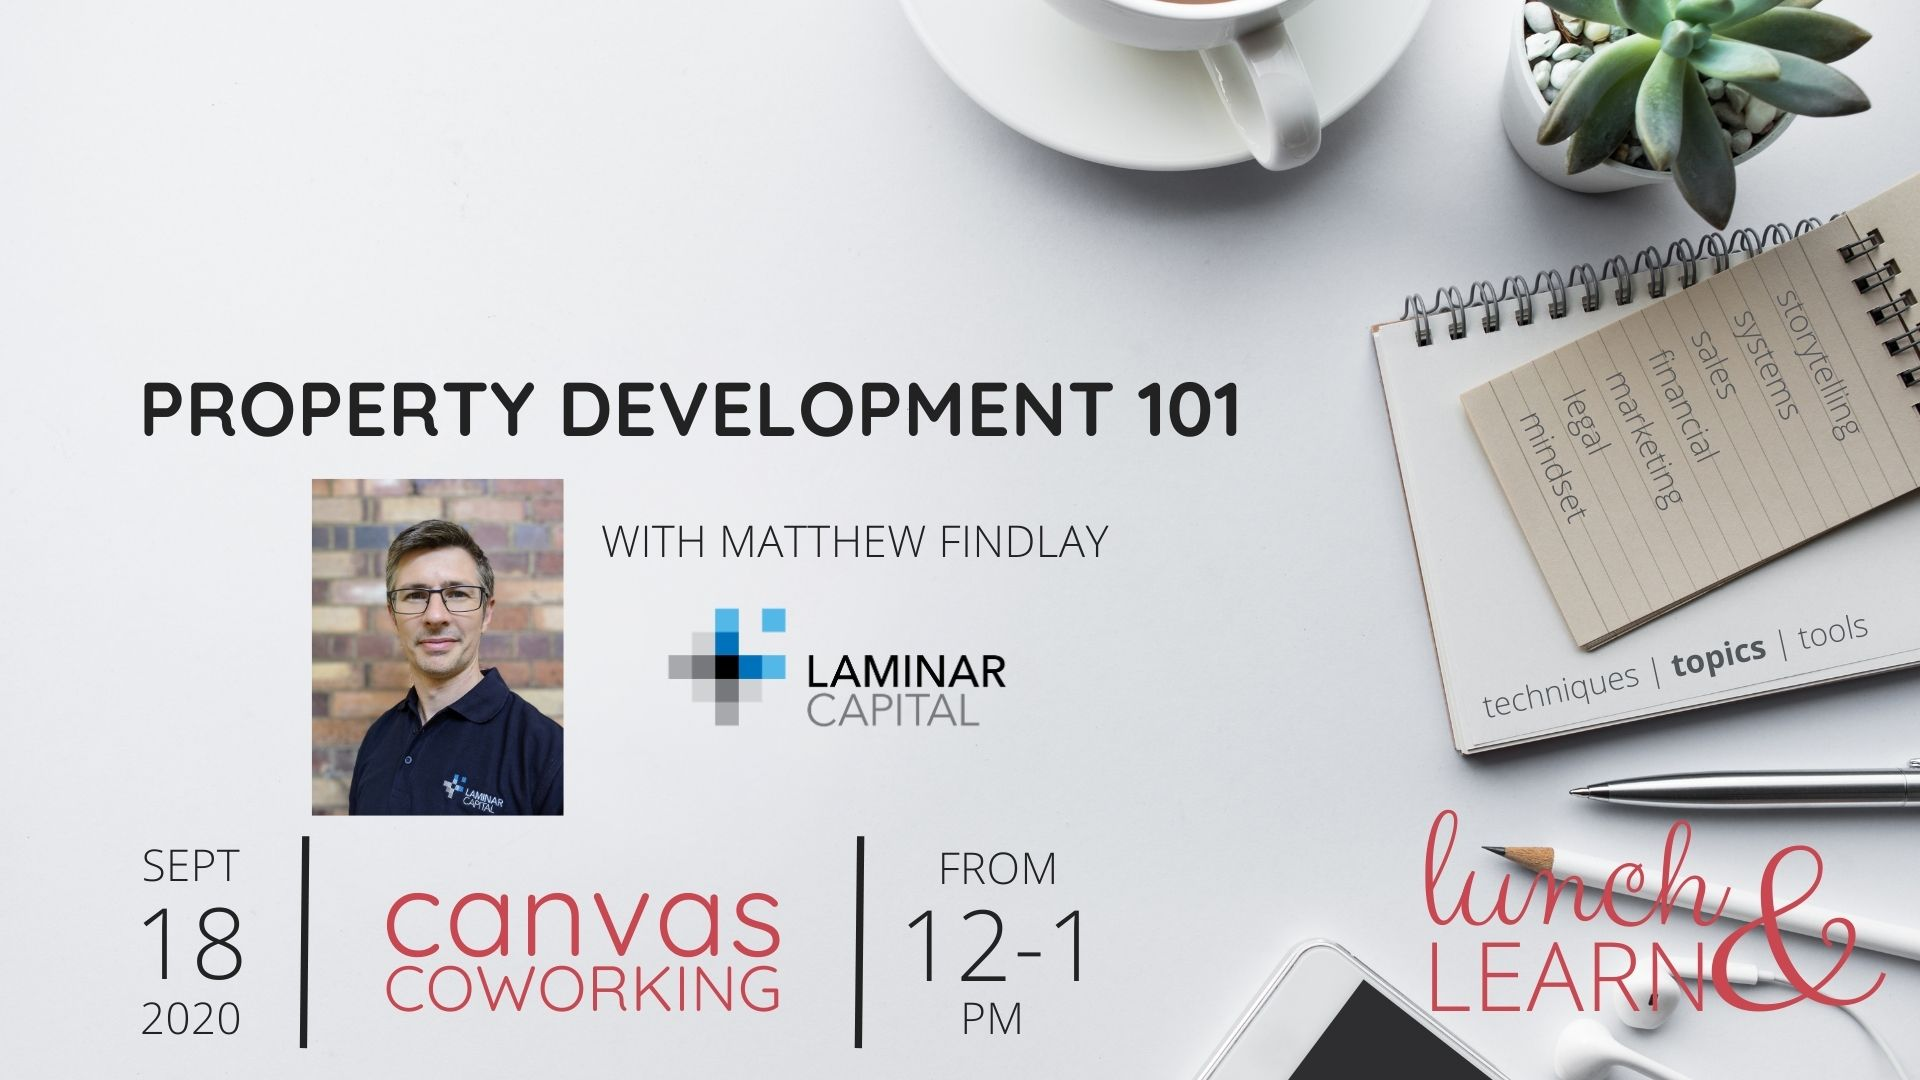 Property Development 101 - Lunch and Learn - Canvas Coworking - 18 Sept 2020